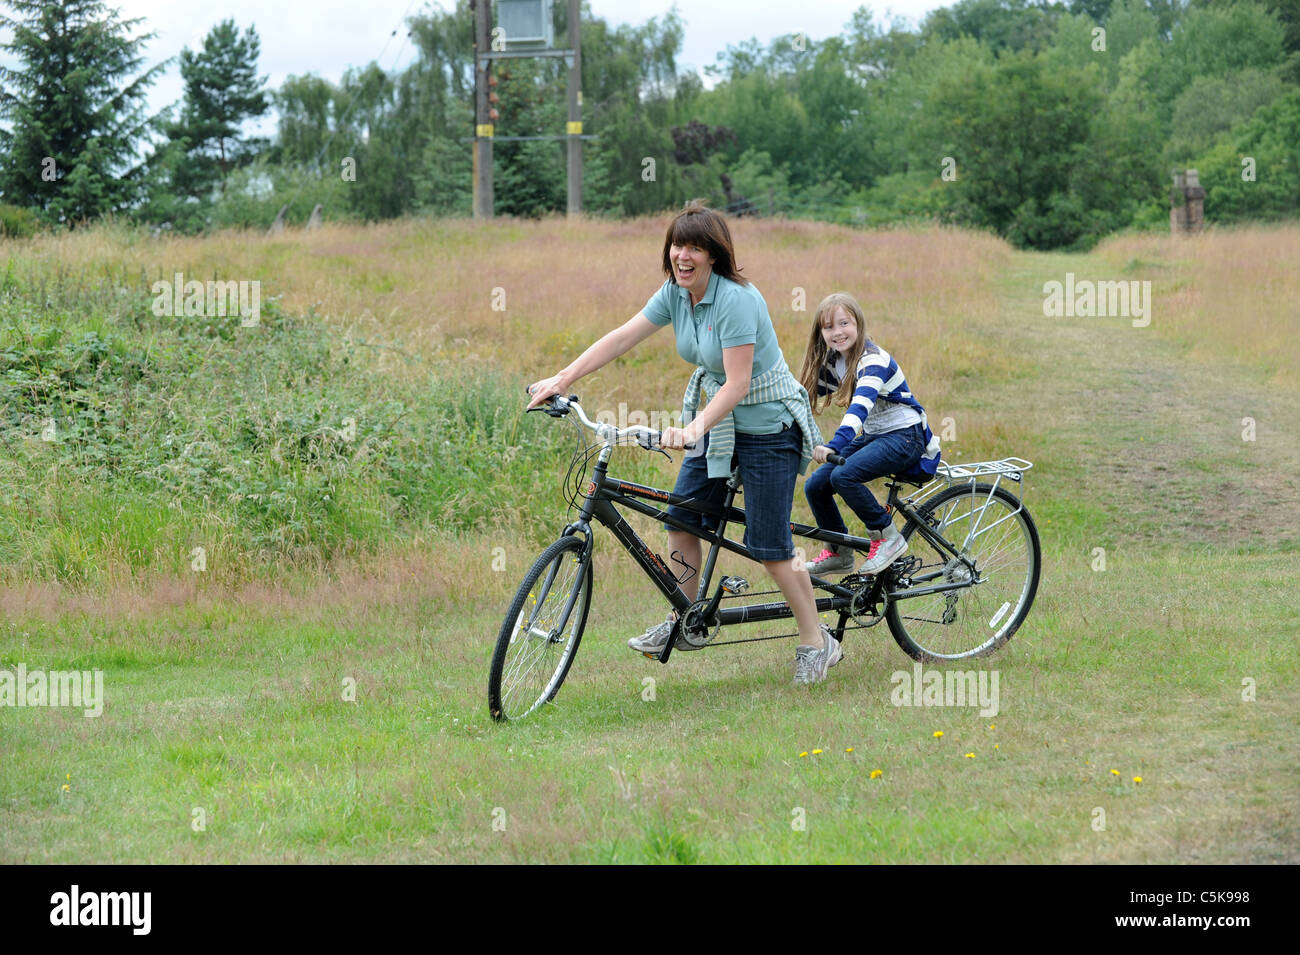 Tandem Bicycle Child Immagini Tandem Bicycle Child Fotos Stock Alamy